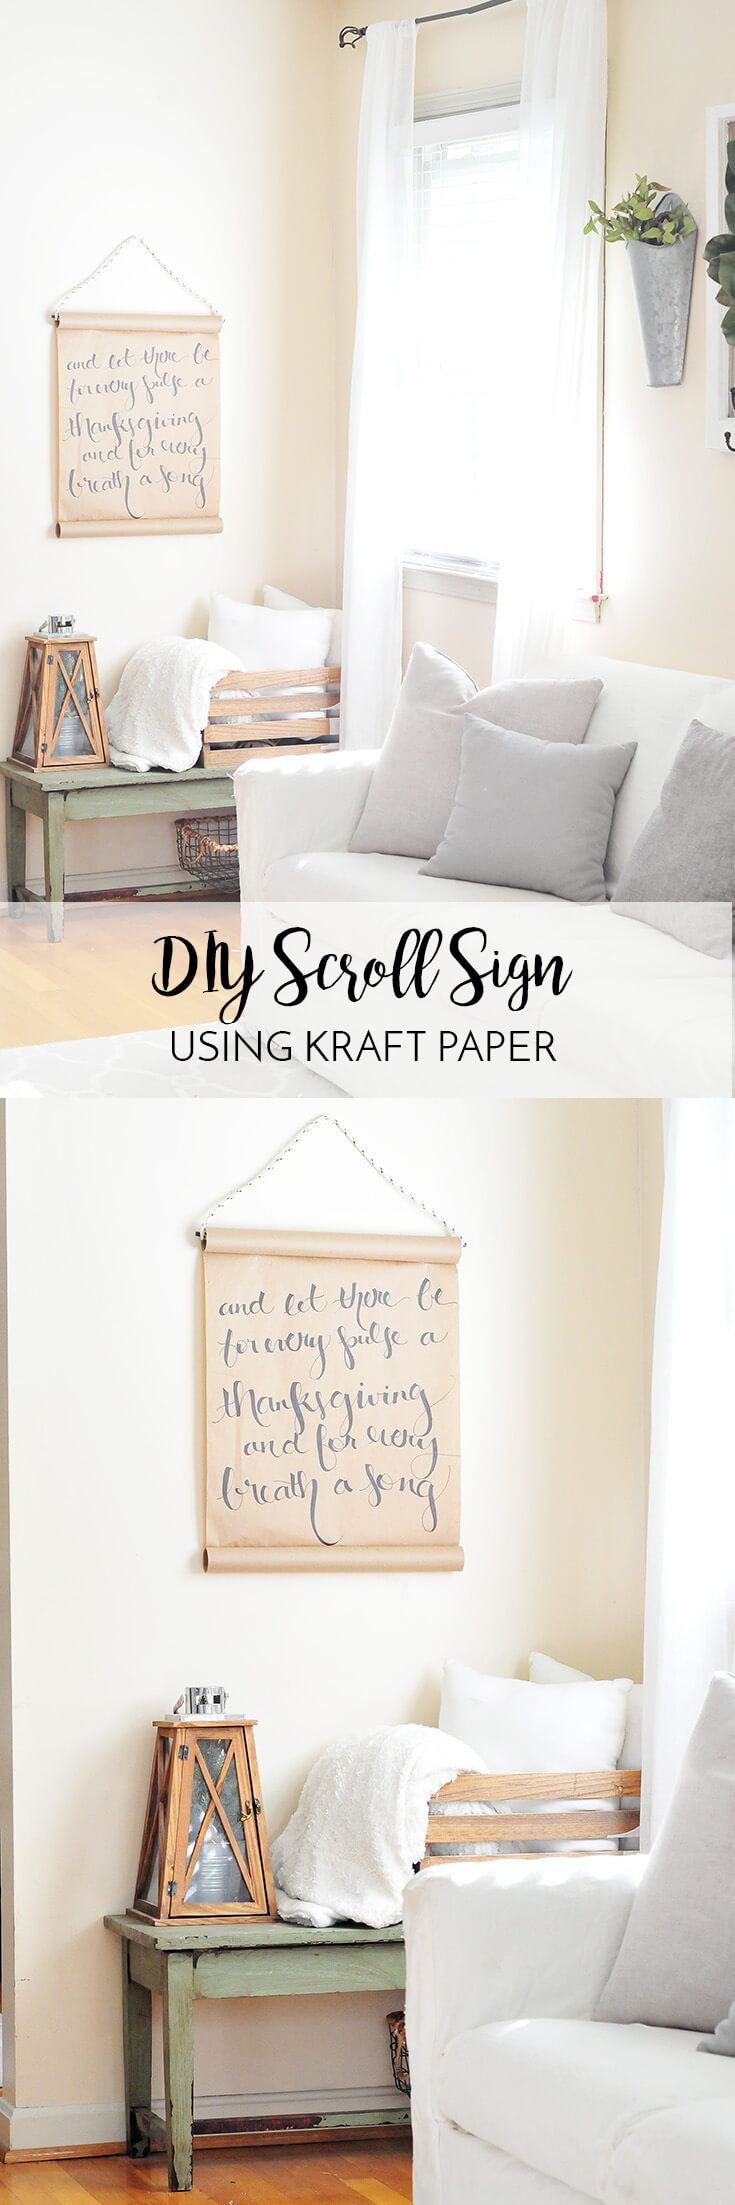 paper decor crafts ideas 20